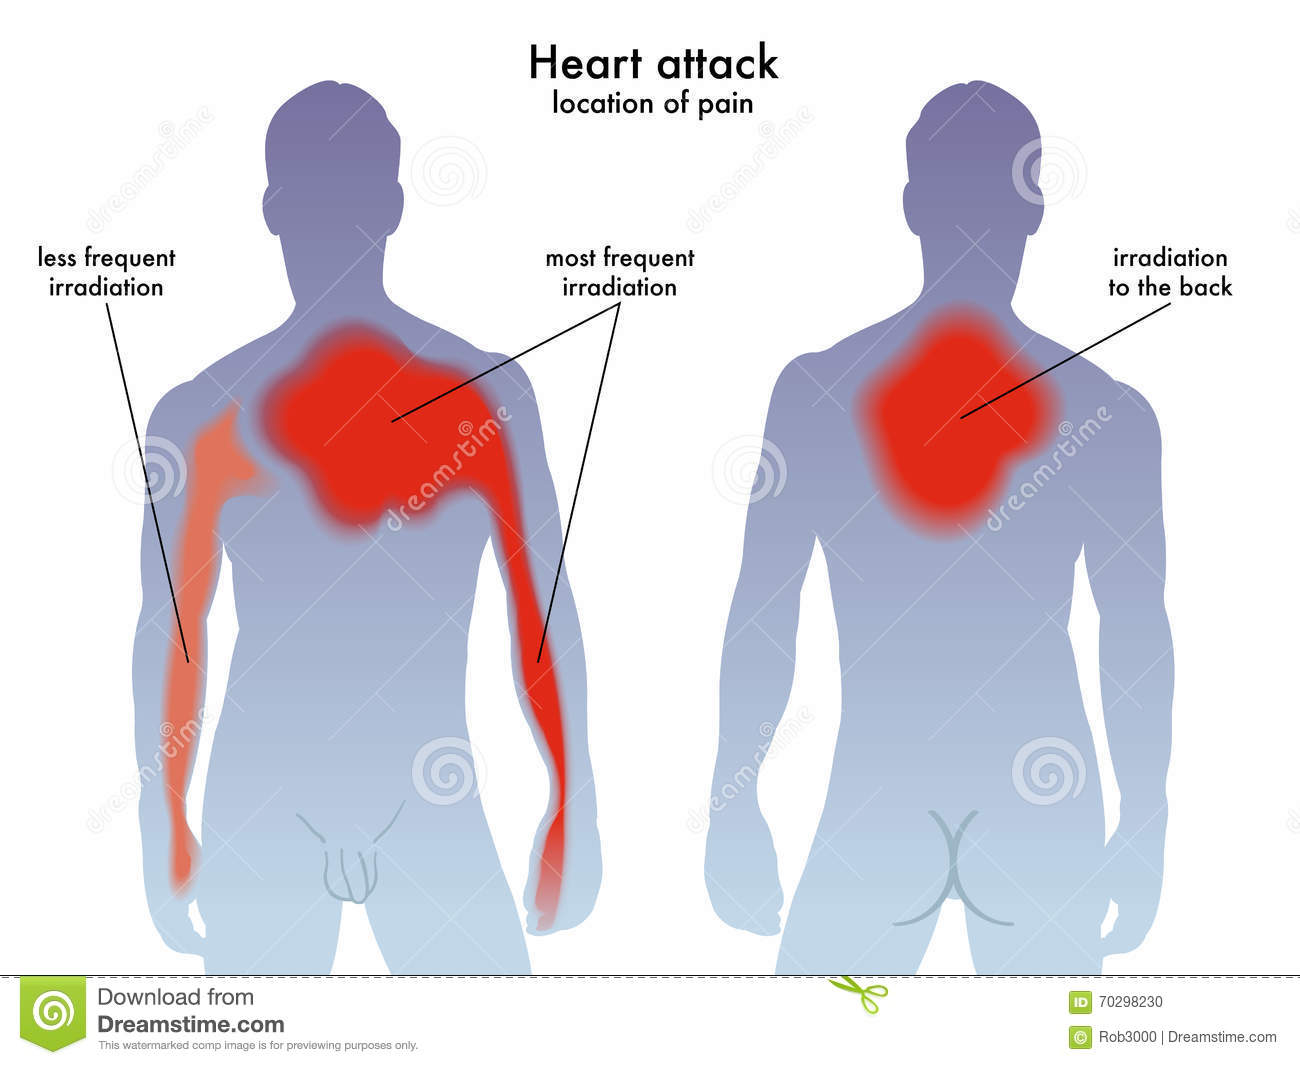 heart attack pain location stock illustration - image: 70298230, Cephalic vein